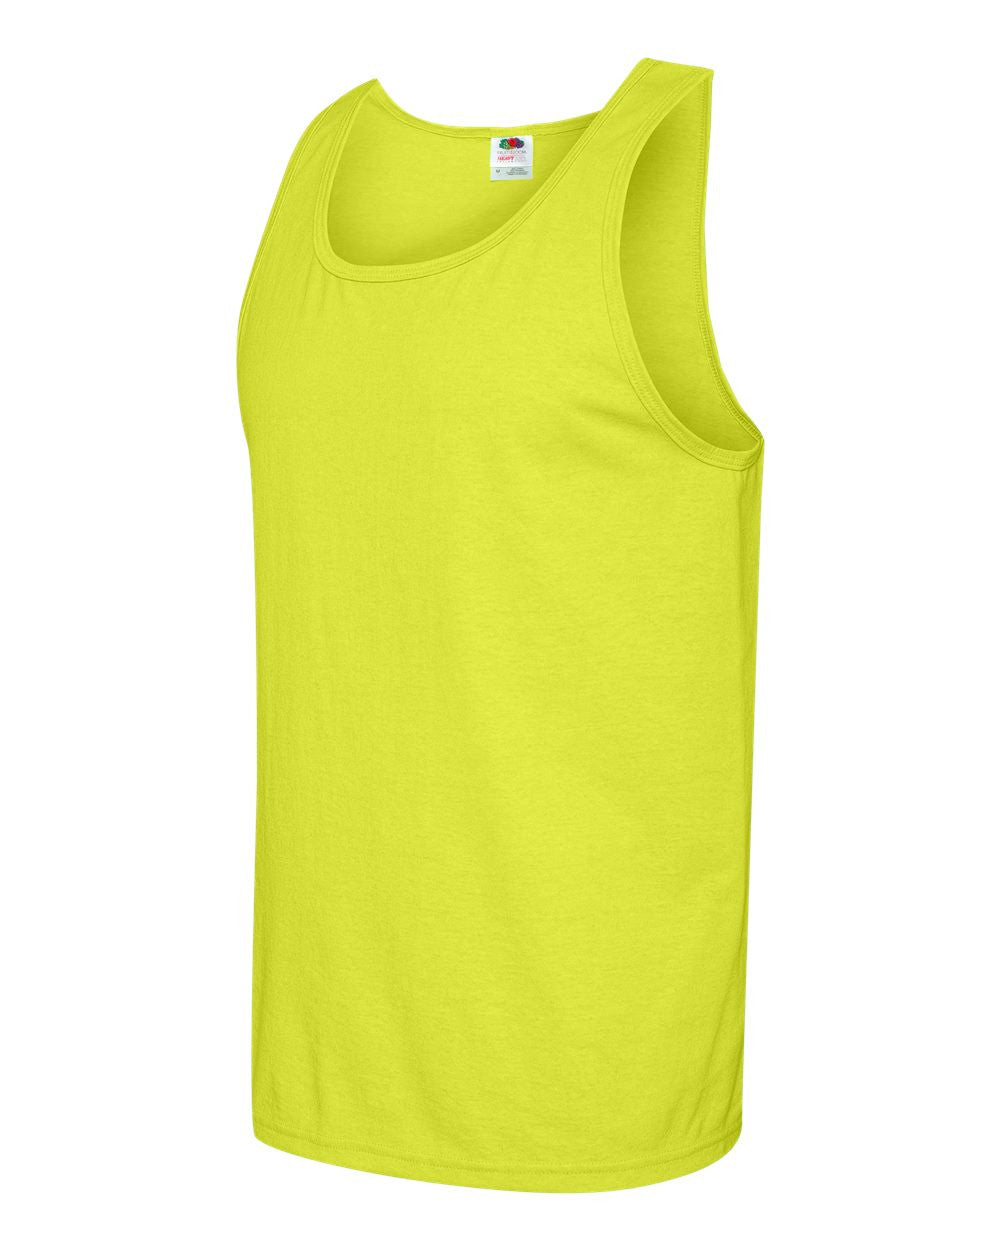 6 pack : Cotton Tank Top by Fruit of the Loom